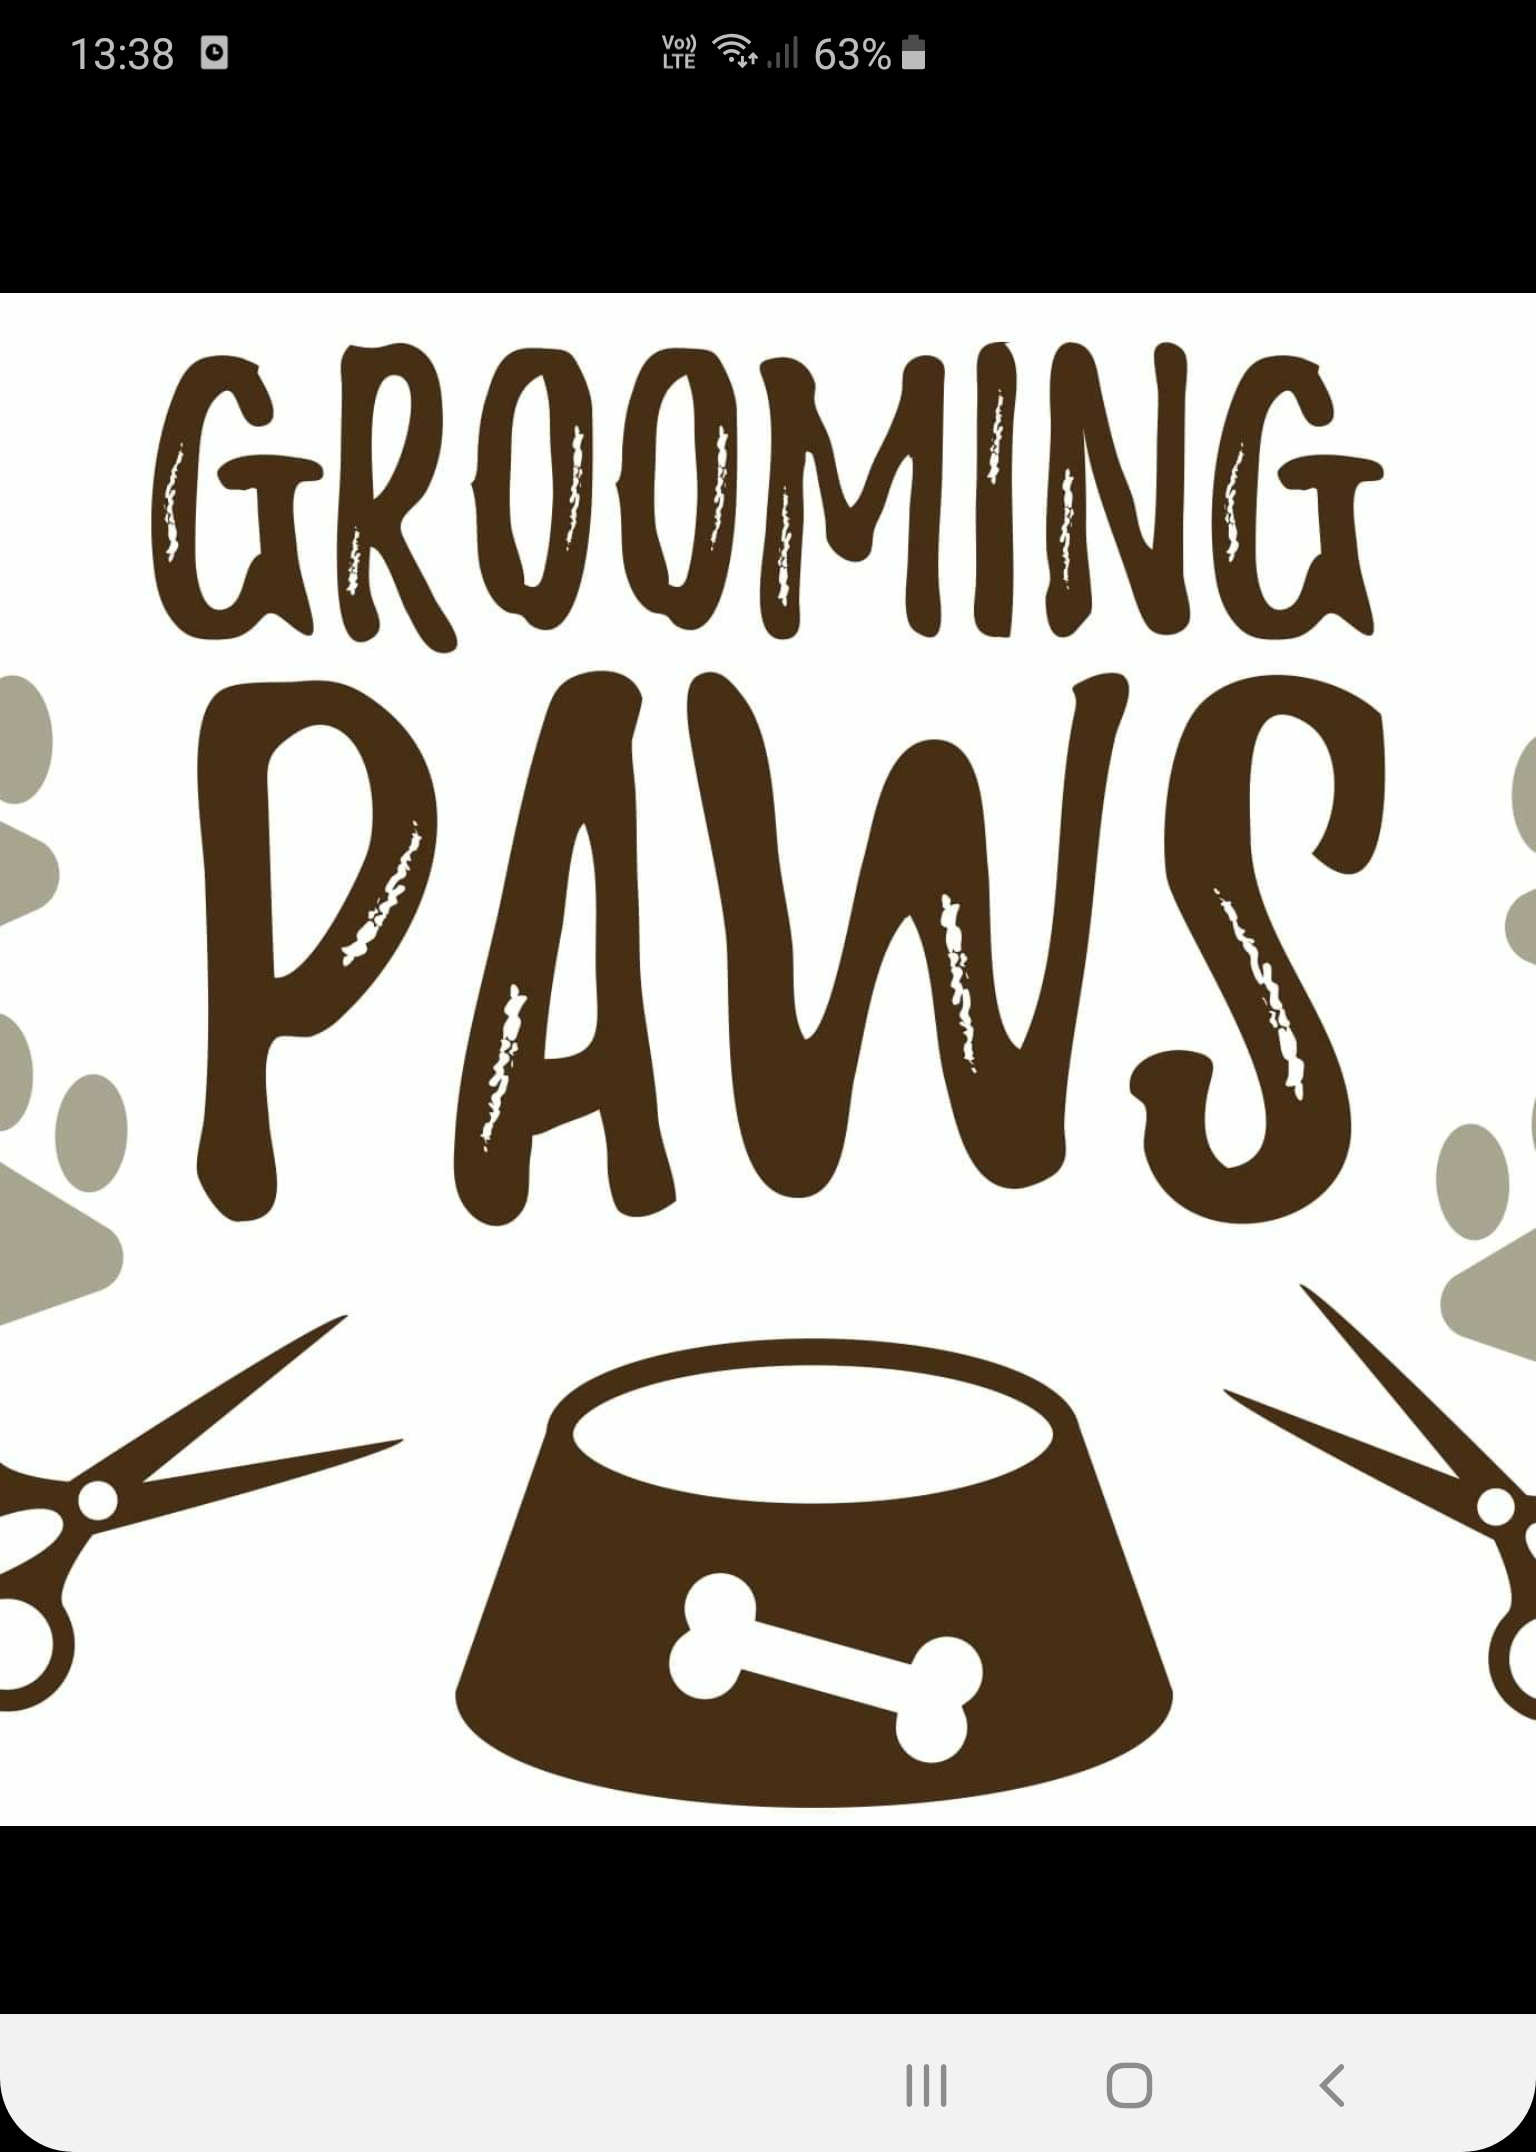 Grooming paws